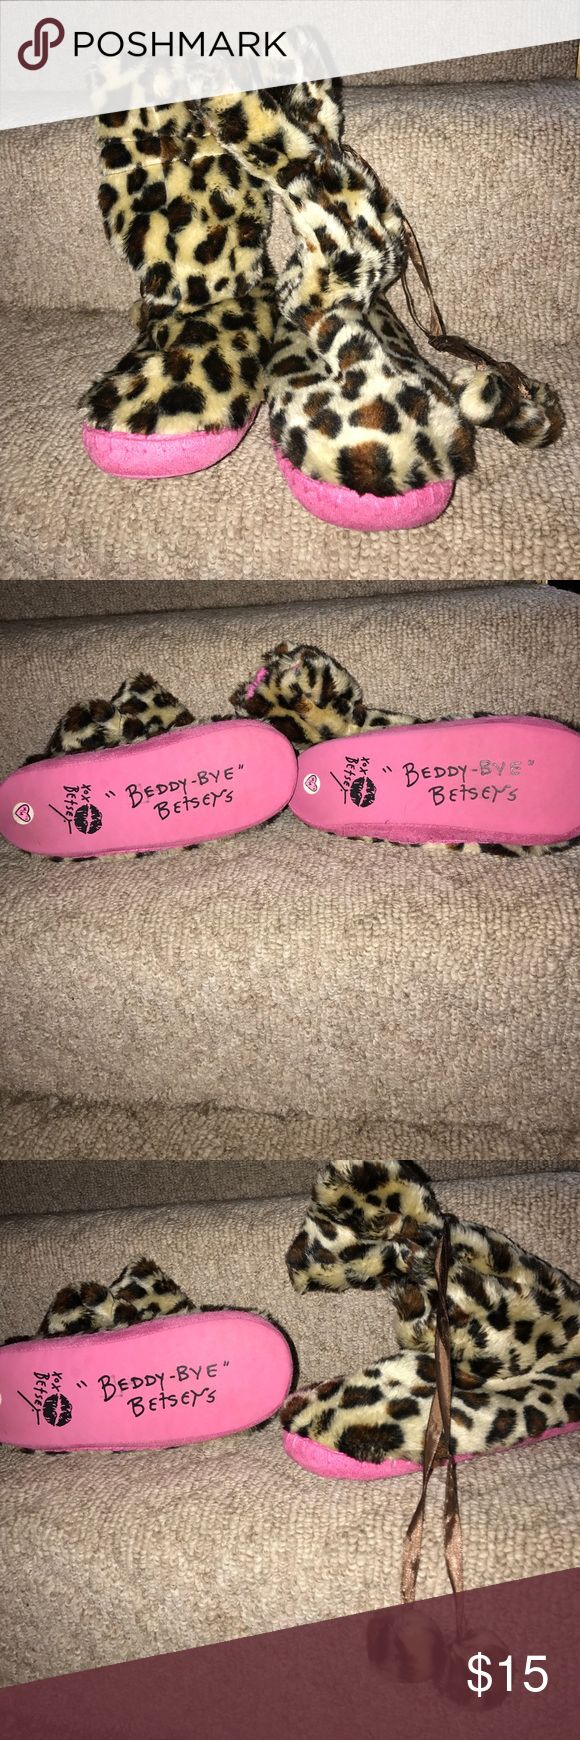 """BETSEY JOHNSON slippers """"Beddy-Bye"""" Betseys! Adorable animal print slippers! Very good condition. Betsey Johnson Shoes Slippers"""